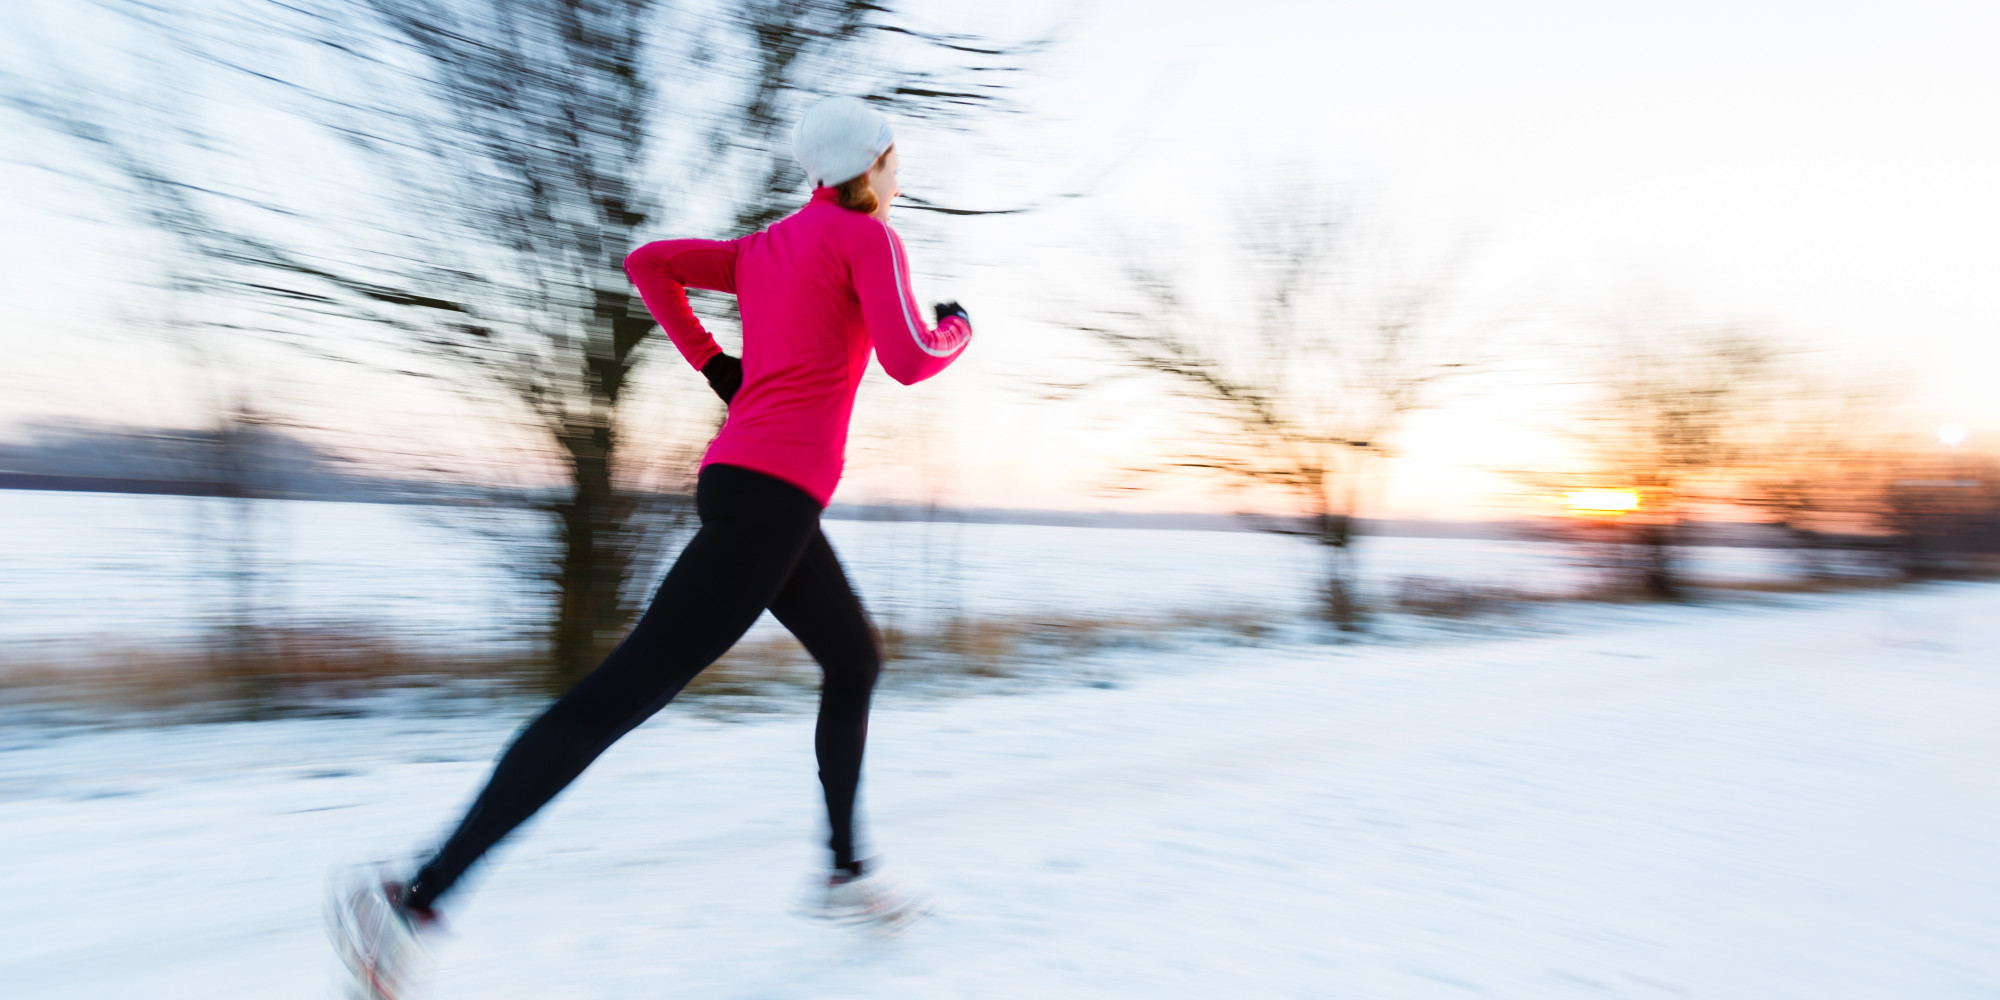 20 Must-Have Items For Cold-Weather Running | HuffPost